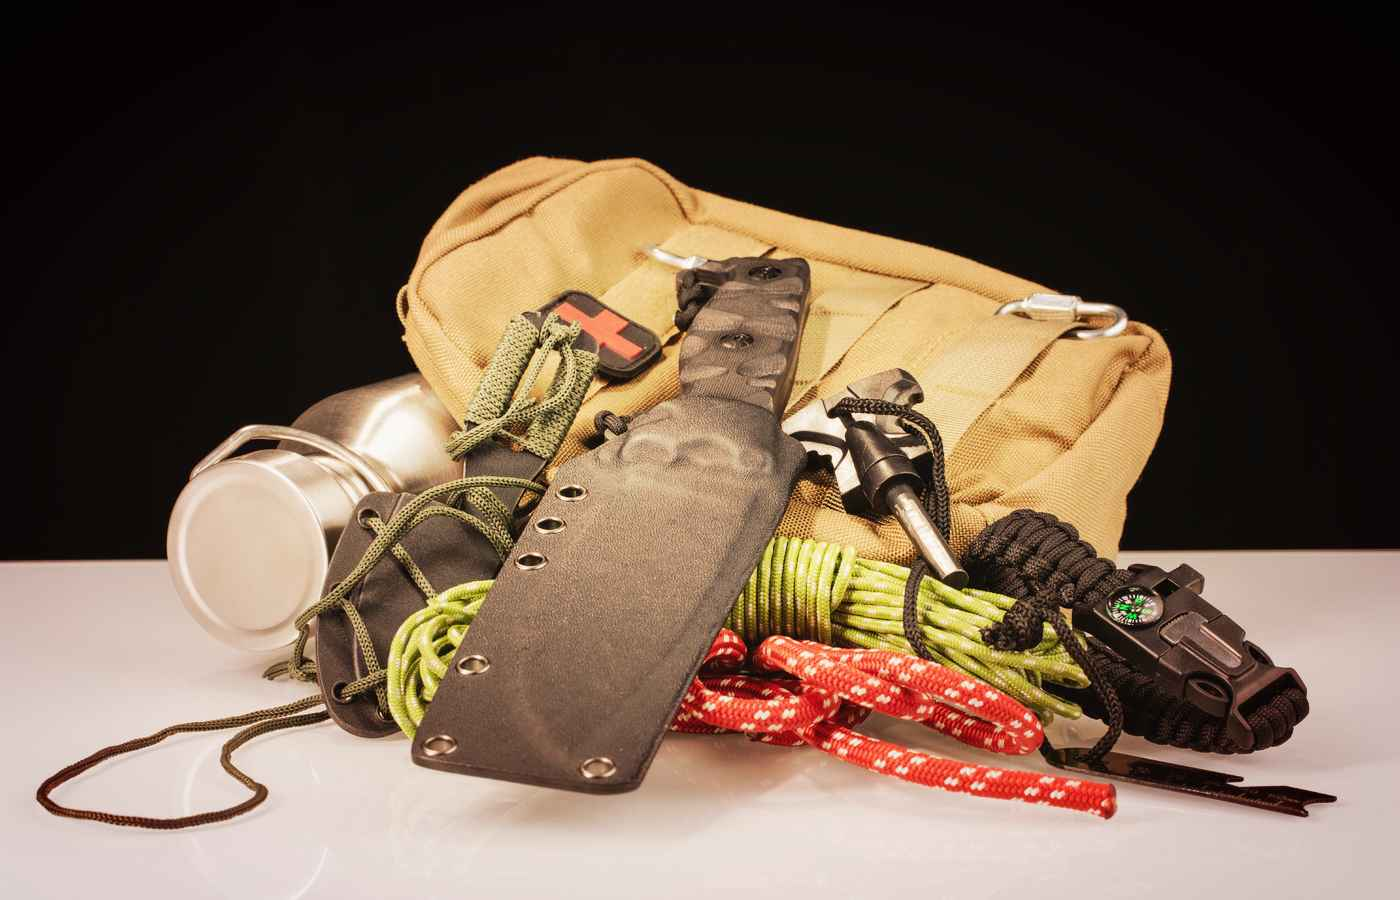 Important Things About Prepping Survival Gear